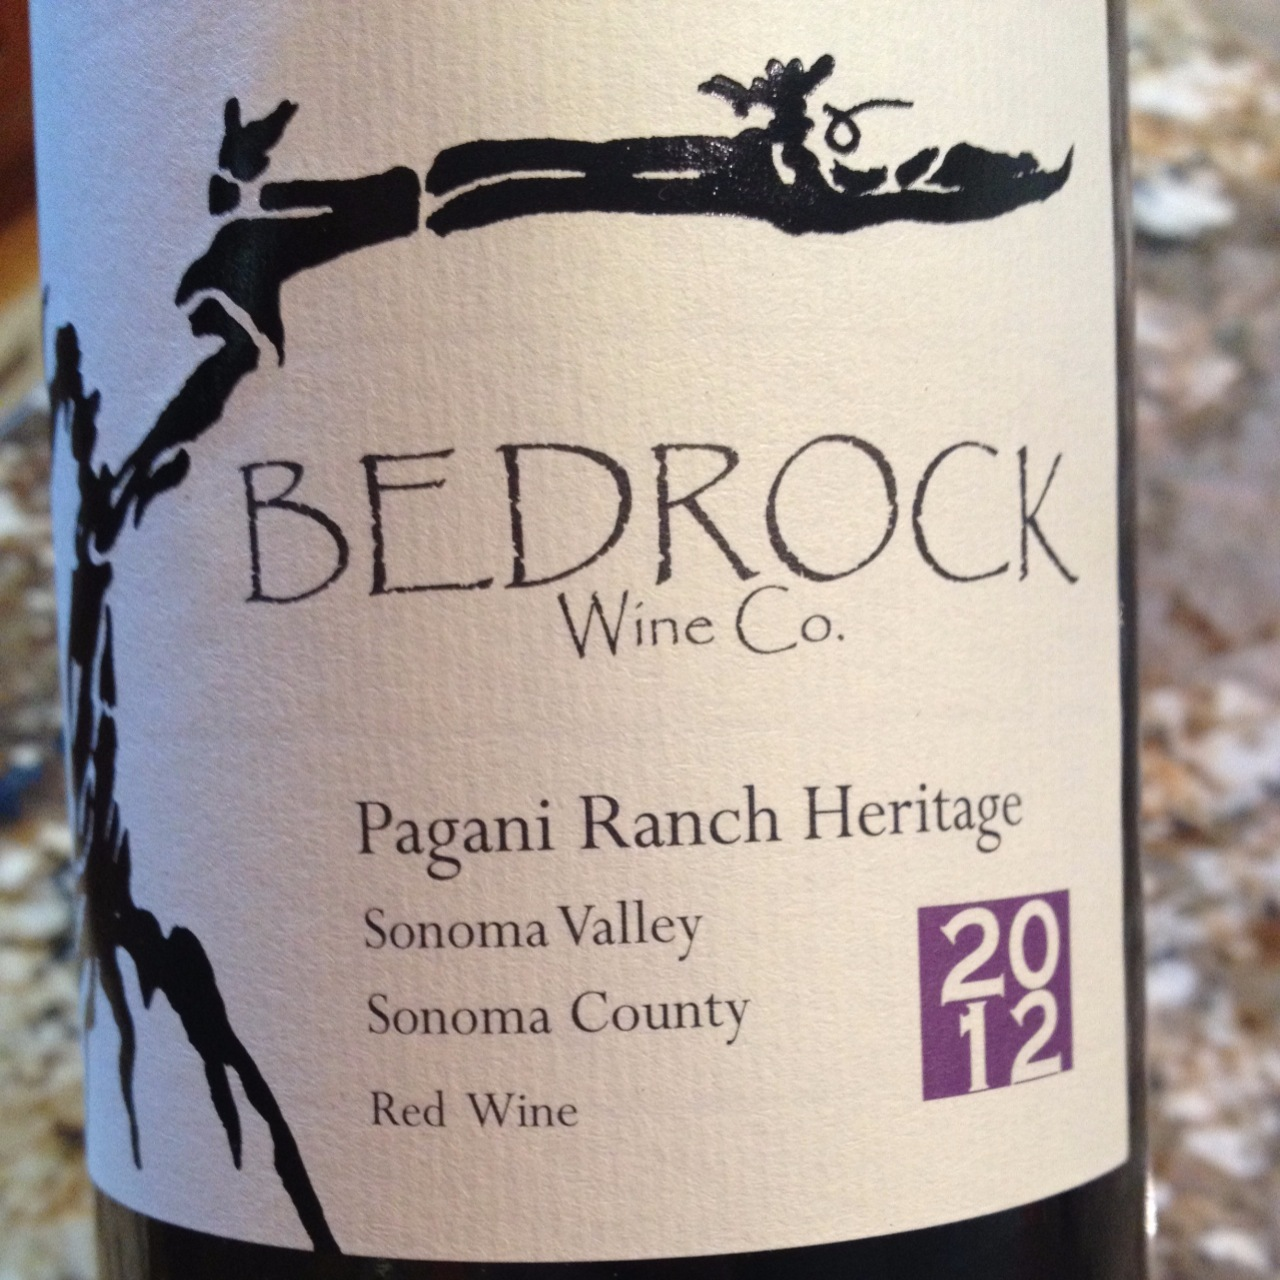 Bedrock Wine Co  Pagani Ranch Heritage Red Blend 2016